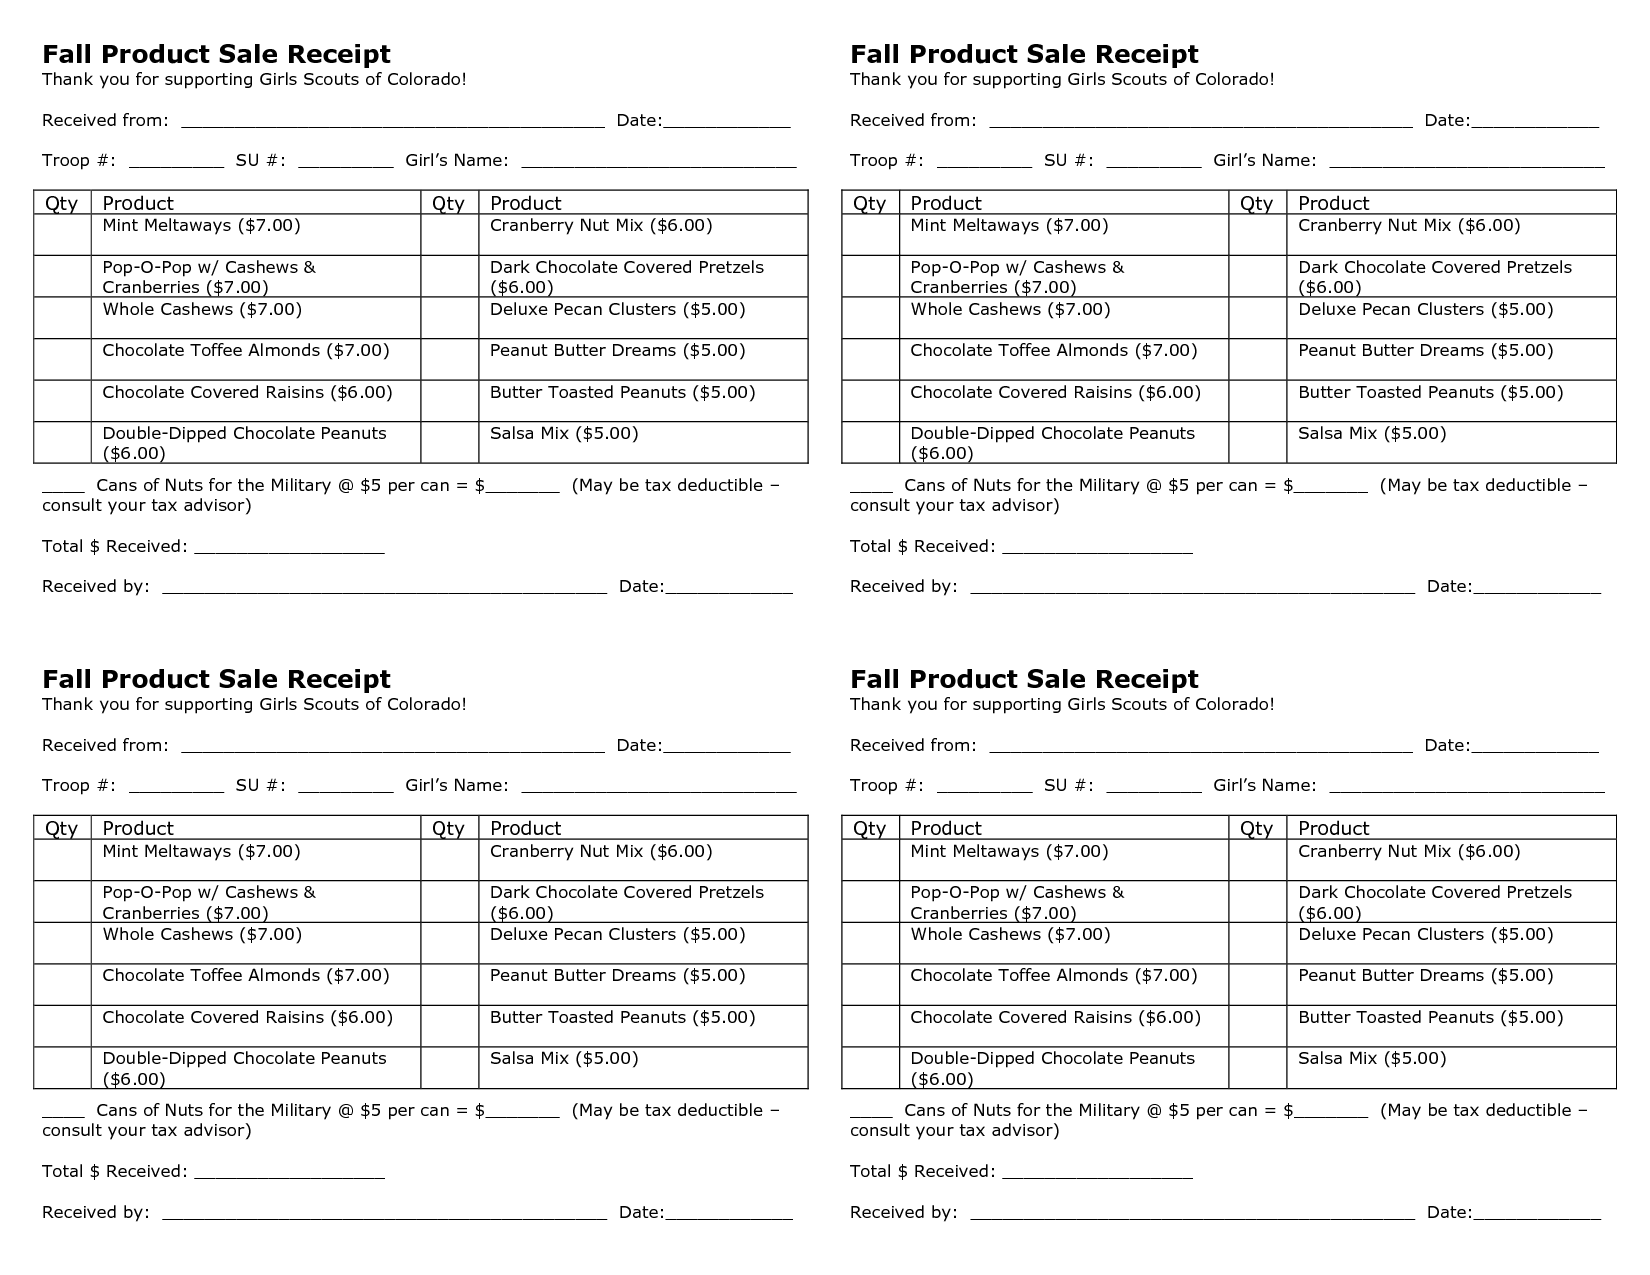 What Is Receipt Book Word Free Girl Scout Nut Sale Thank You  Fall Product Sale Receipt  Express Invoices Word with Receipt Generator Free Pdf Free Girl Scout Nut Sale Thank You  Fall Product Sale Receipt Download Invoice Software Excel